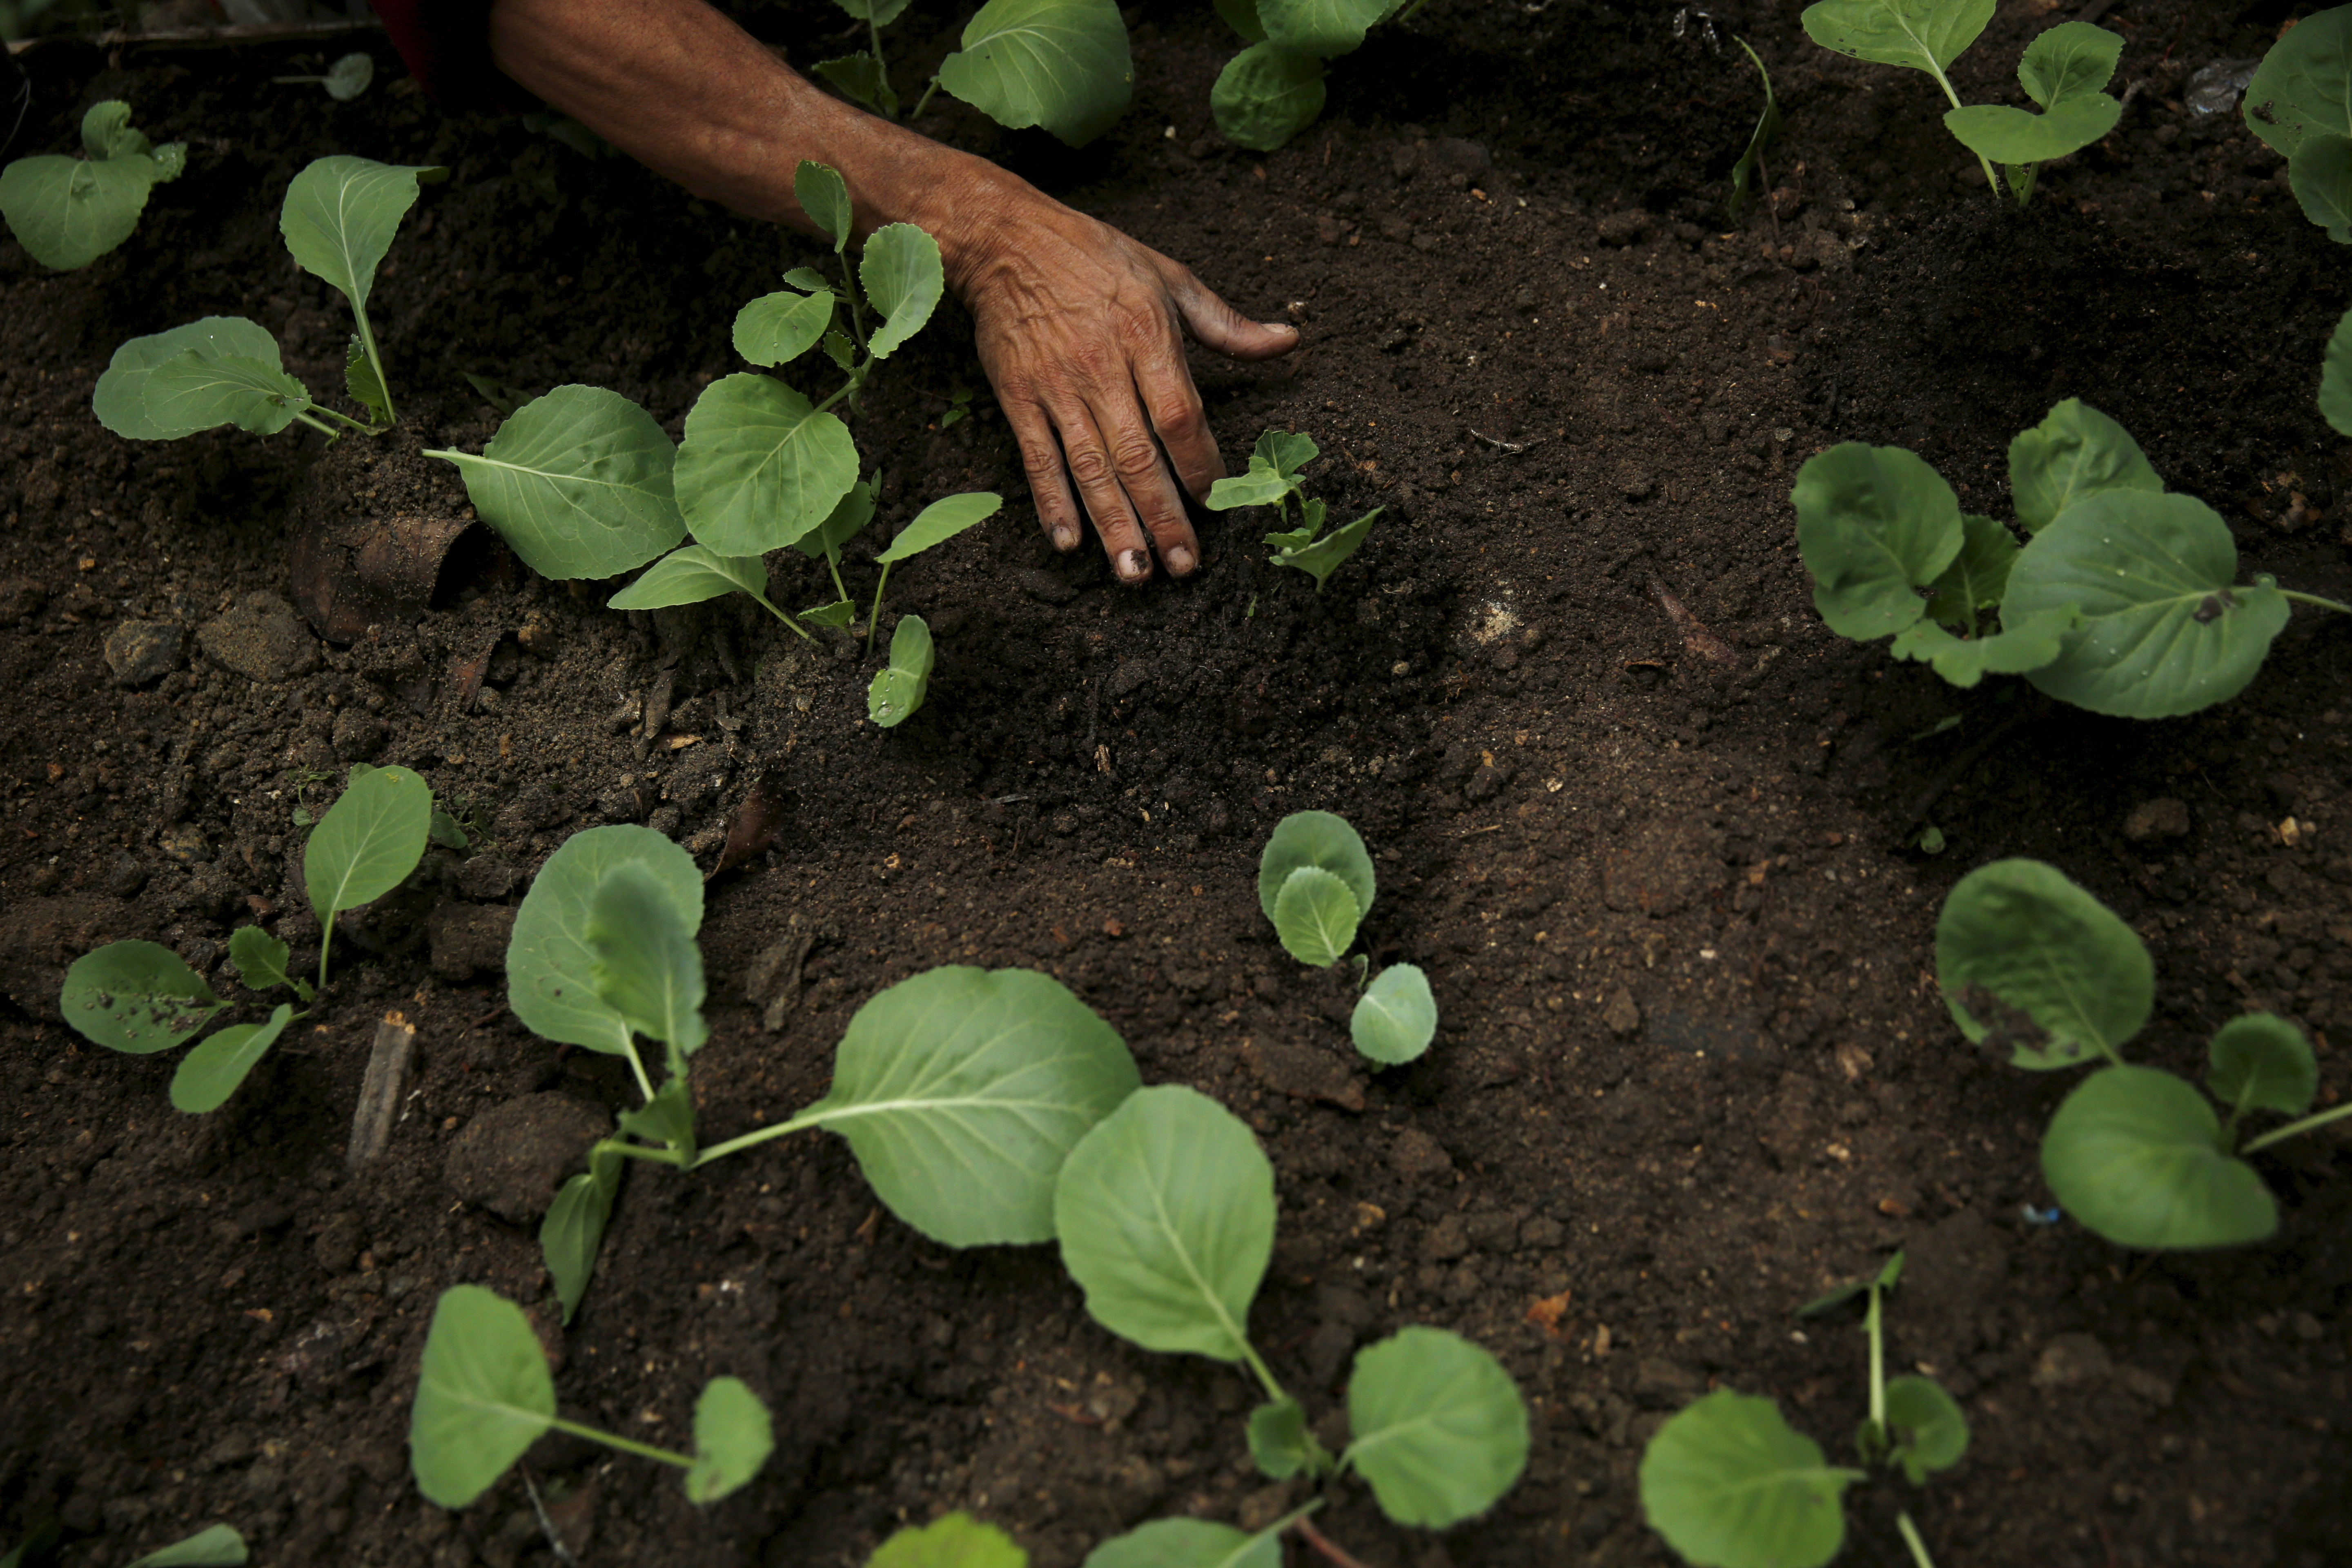 Brazilian Mauro Quintanilla, plants seedlings at the Sitie Ecological Park, that he founded, in the Vidigal slum in Rio de Janeiro, Brazil, June 2, 2015. The Park, that is a reforestation, agriculture and recycling project, was built after removing 16 tons of garbage which people had piled up above the hill, according Quintanilla. REUTERS/Pilar Olivares - GF10000115484